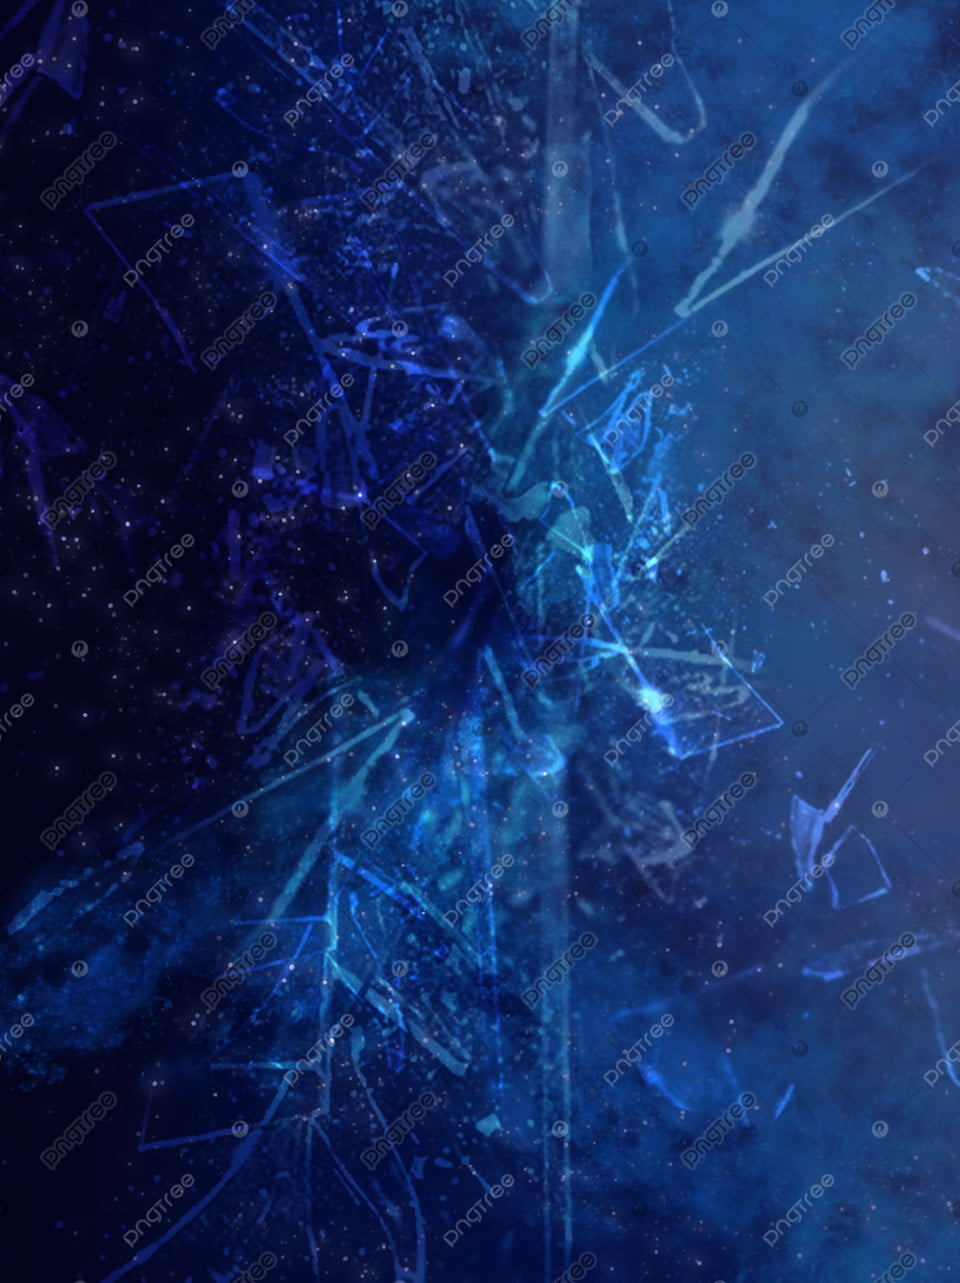 Blue Particle Light Effect Cool Background Blue Particle Light Effect Cool Background Image For Free Download